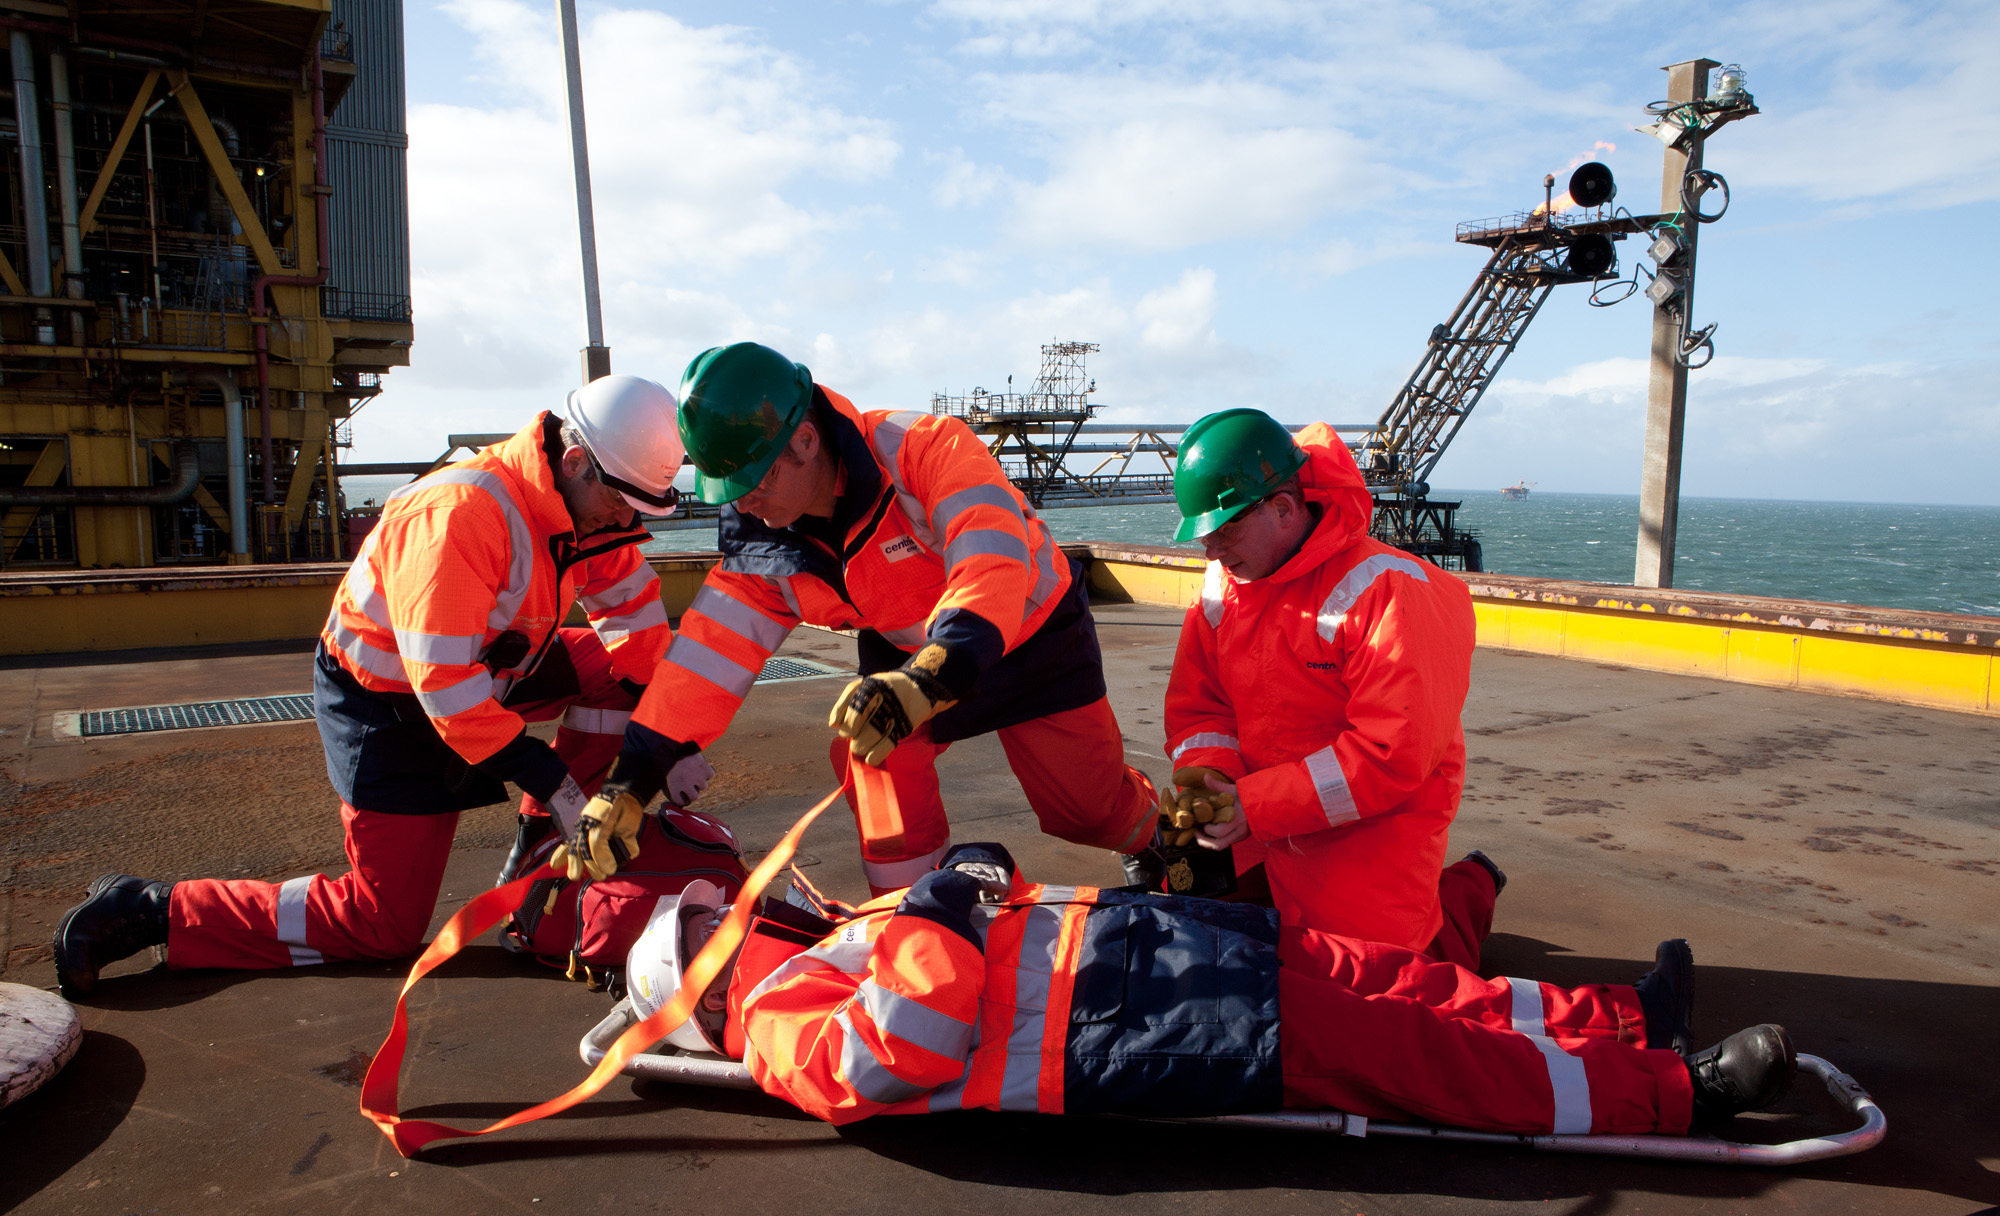 Medical simulation, gas rig, irish sea